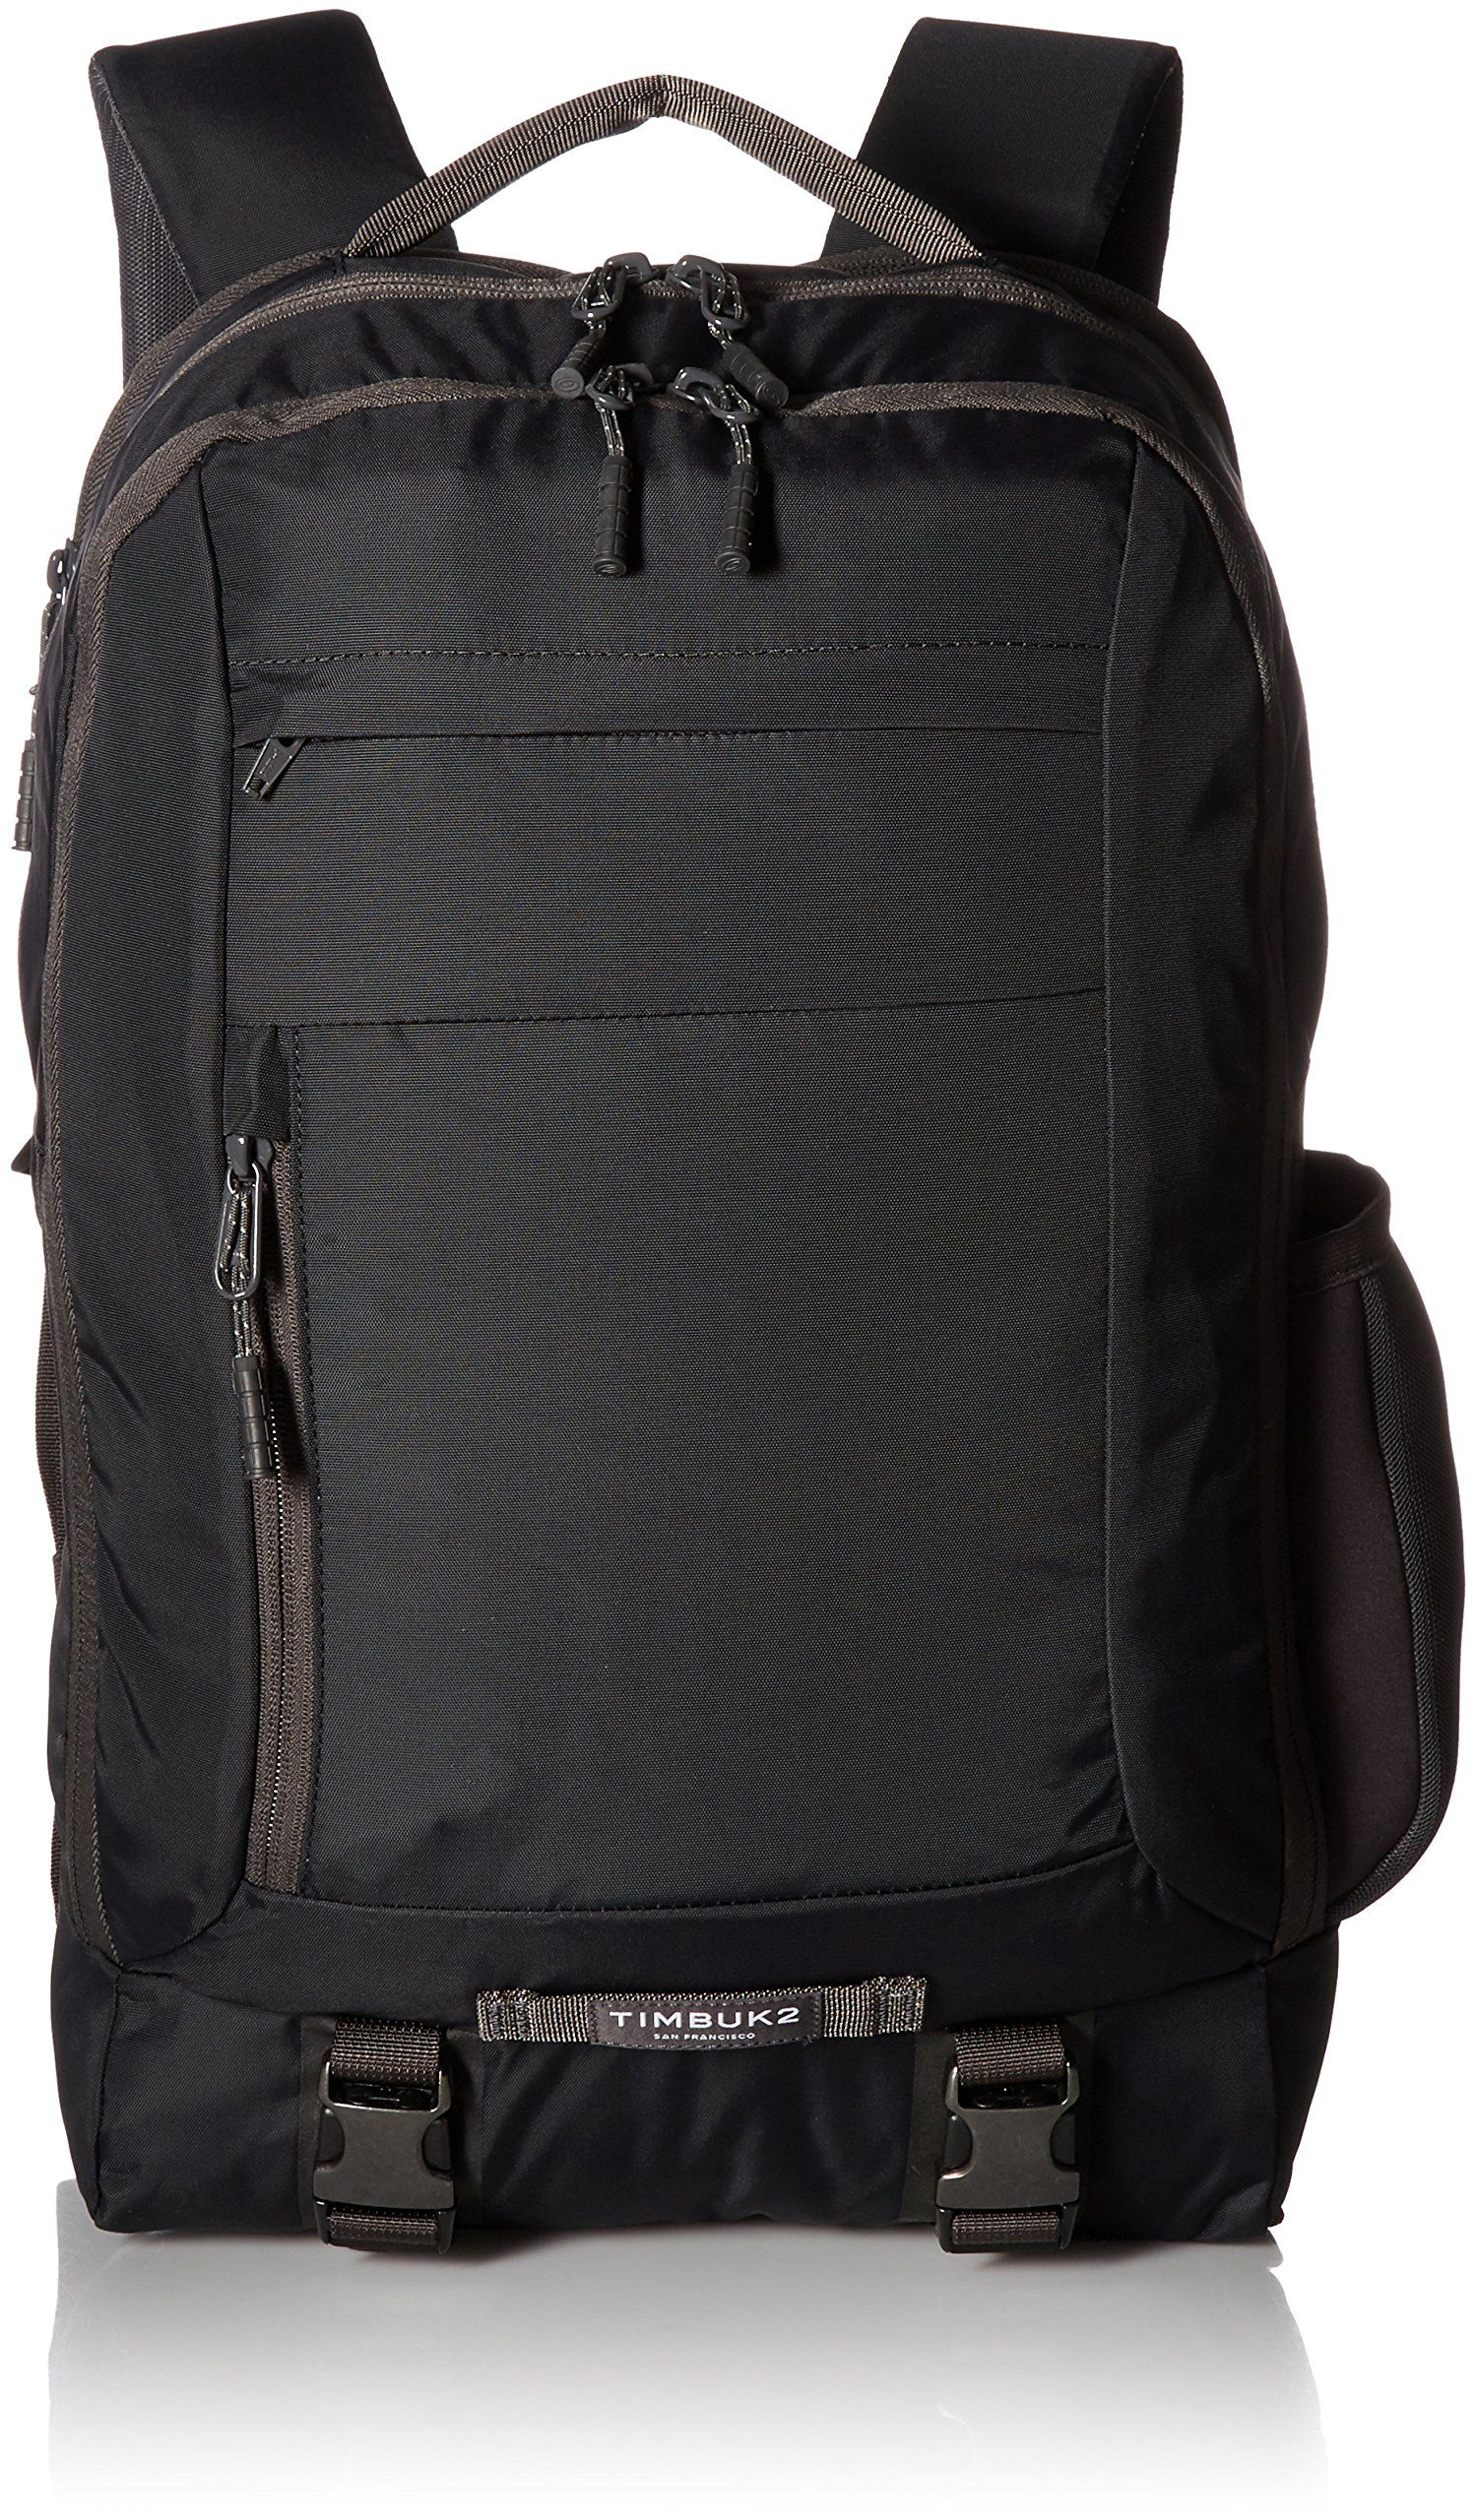 9bef55928c3 Timbuk2 The Authority Pack Jet Black OS Jet Black One Size >>> Want  additional info? Click on the image. (This is an affiliate link)